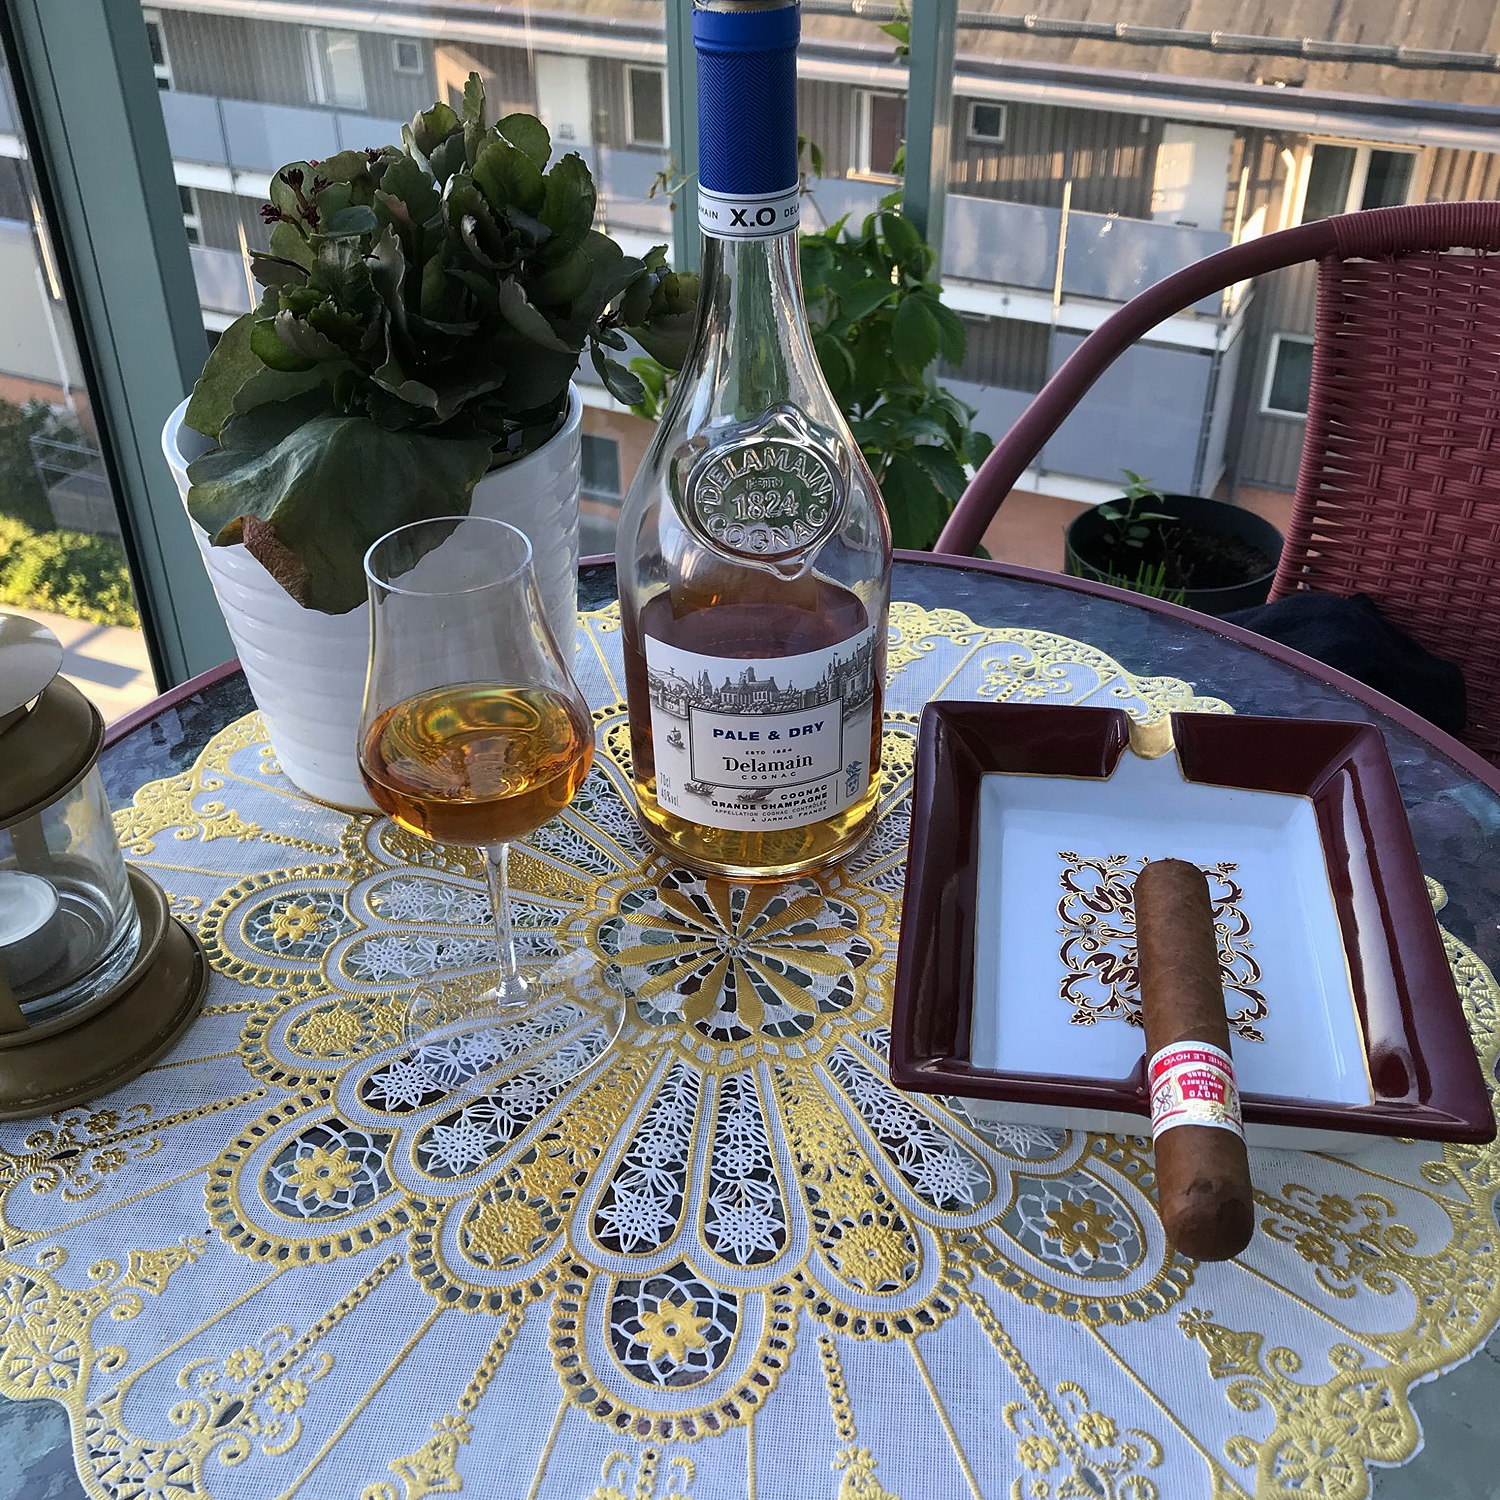 Delamain Pale & Dry enjoyed with a cigar